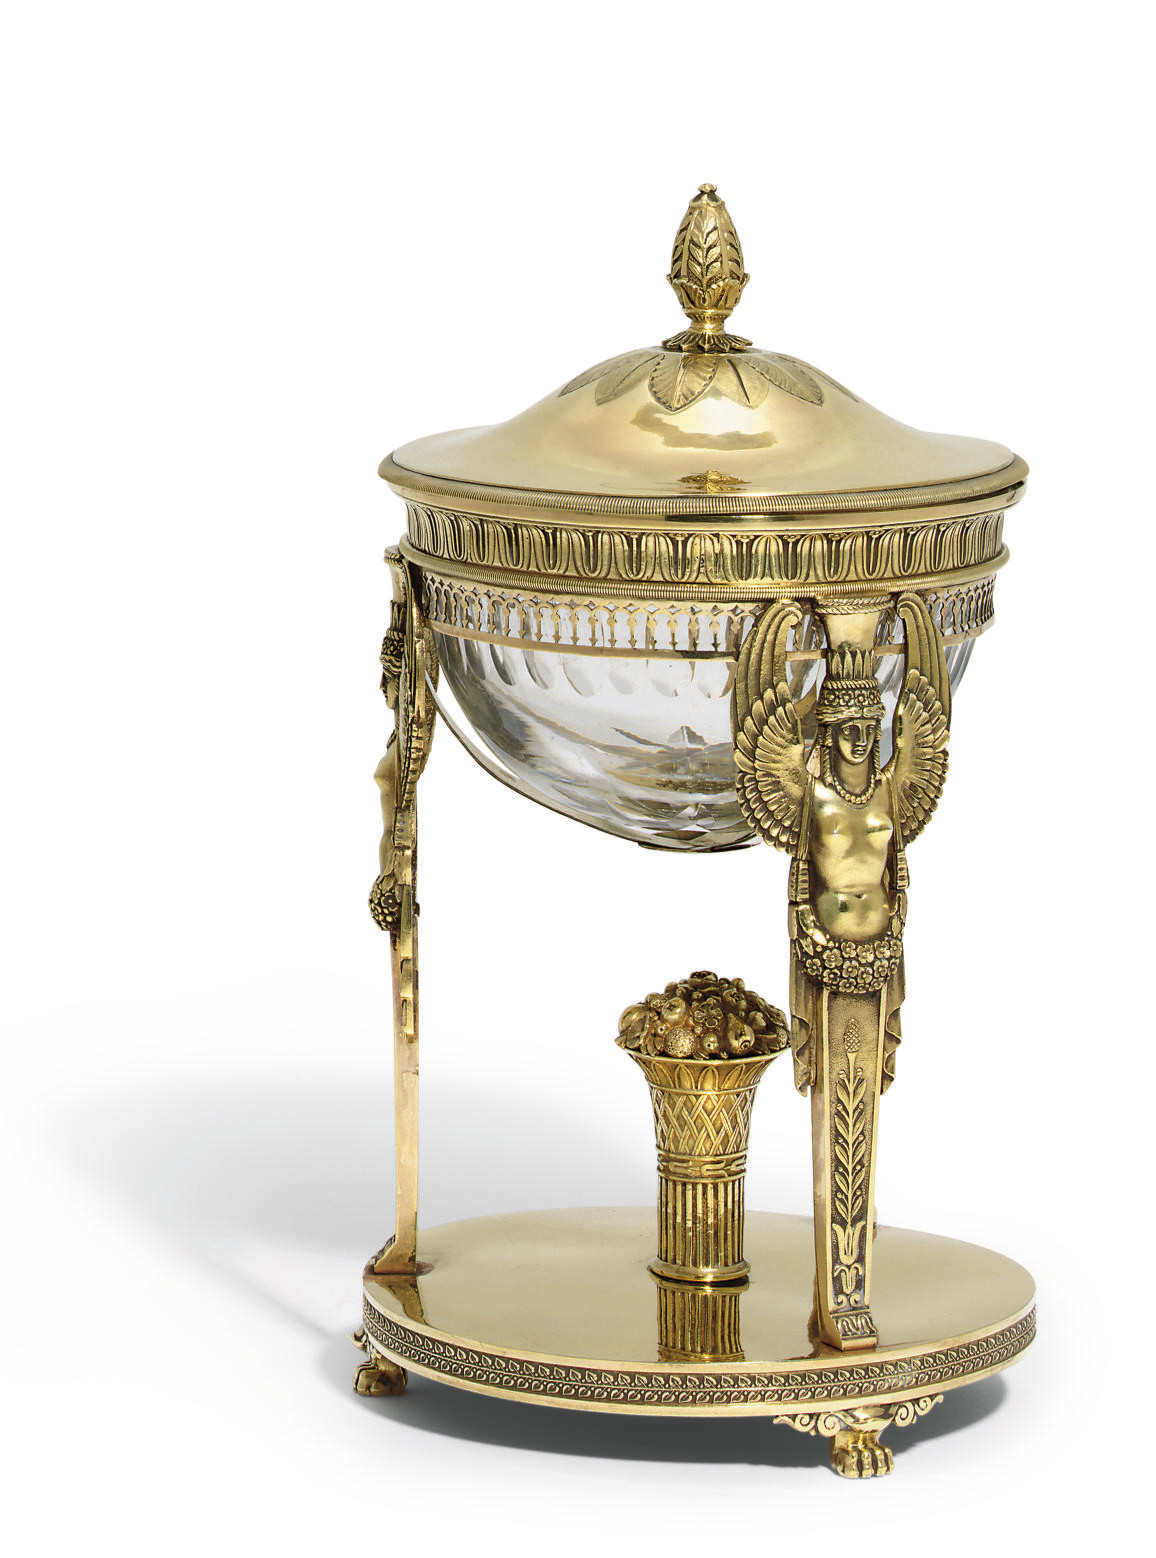 A FRENCH SILVER-GILT VASE AND